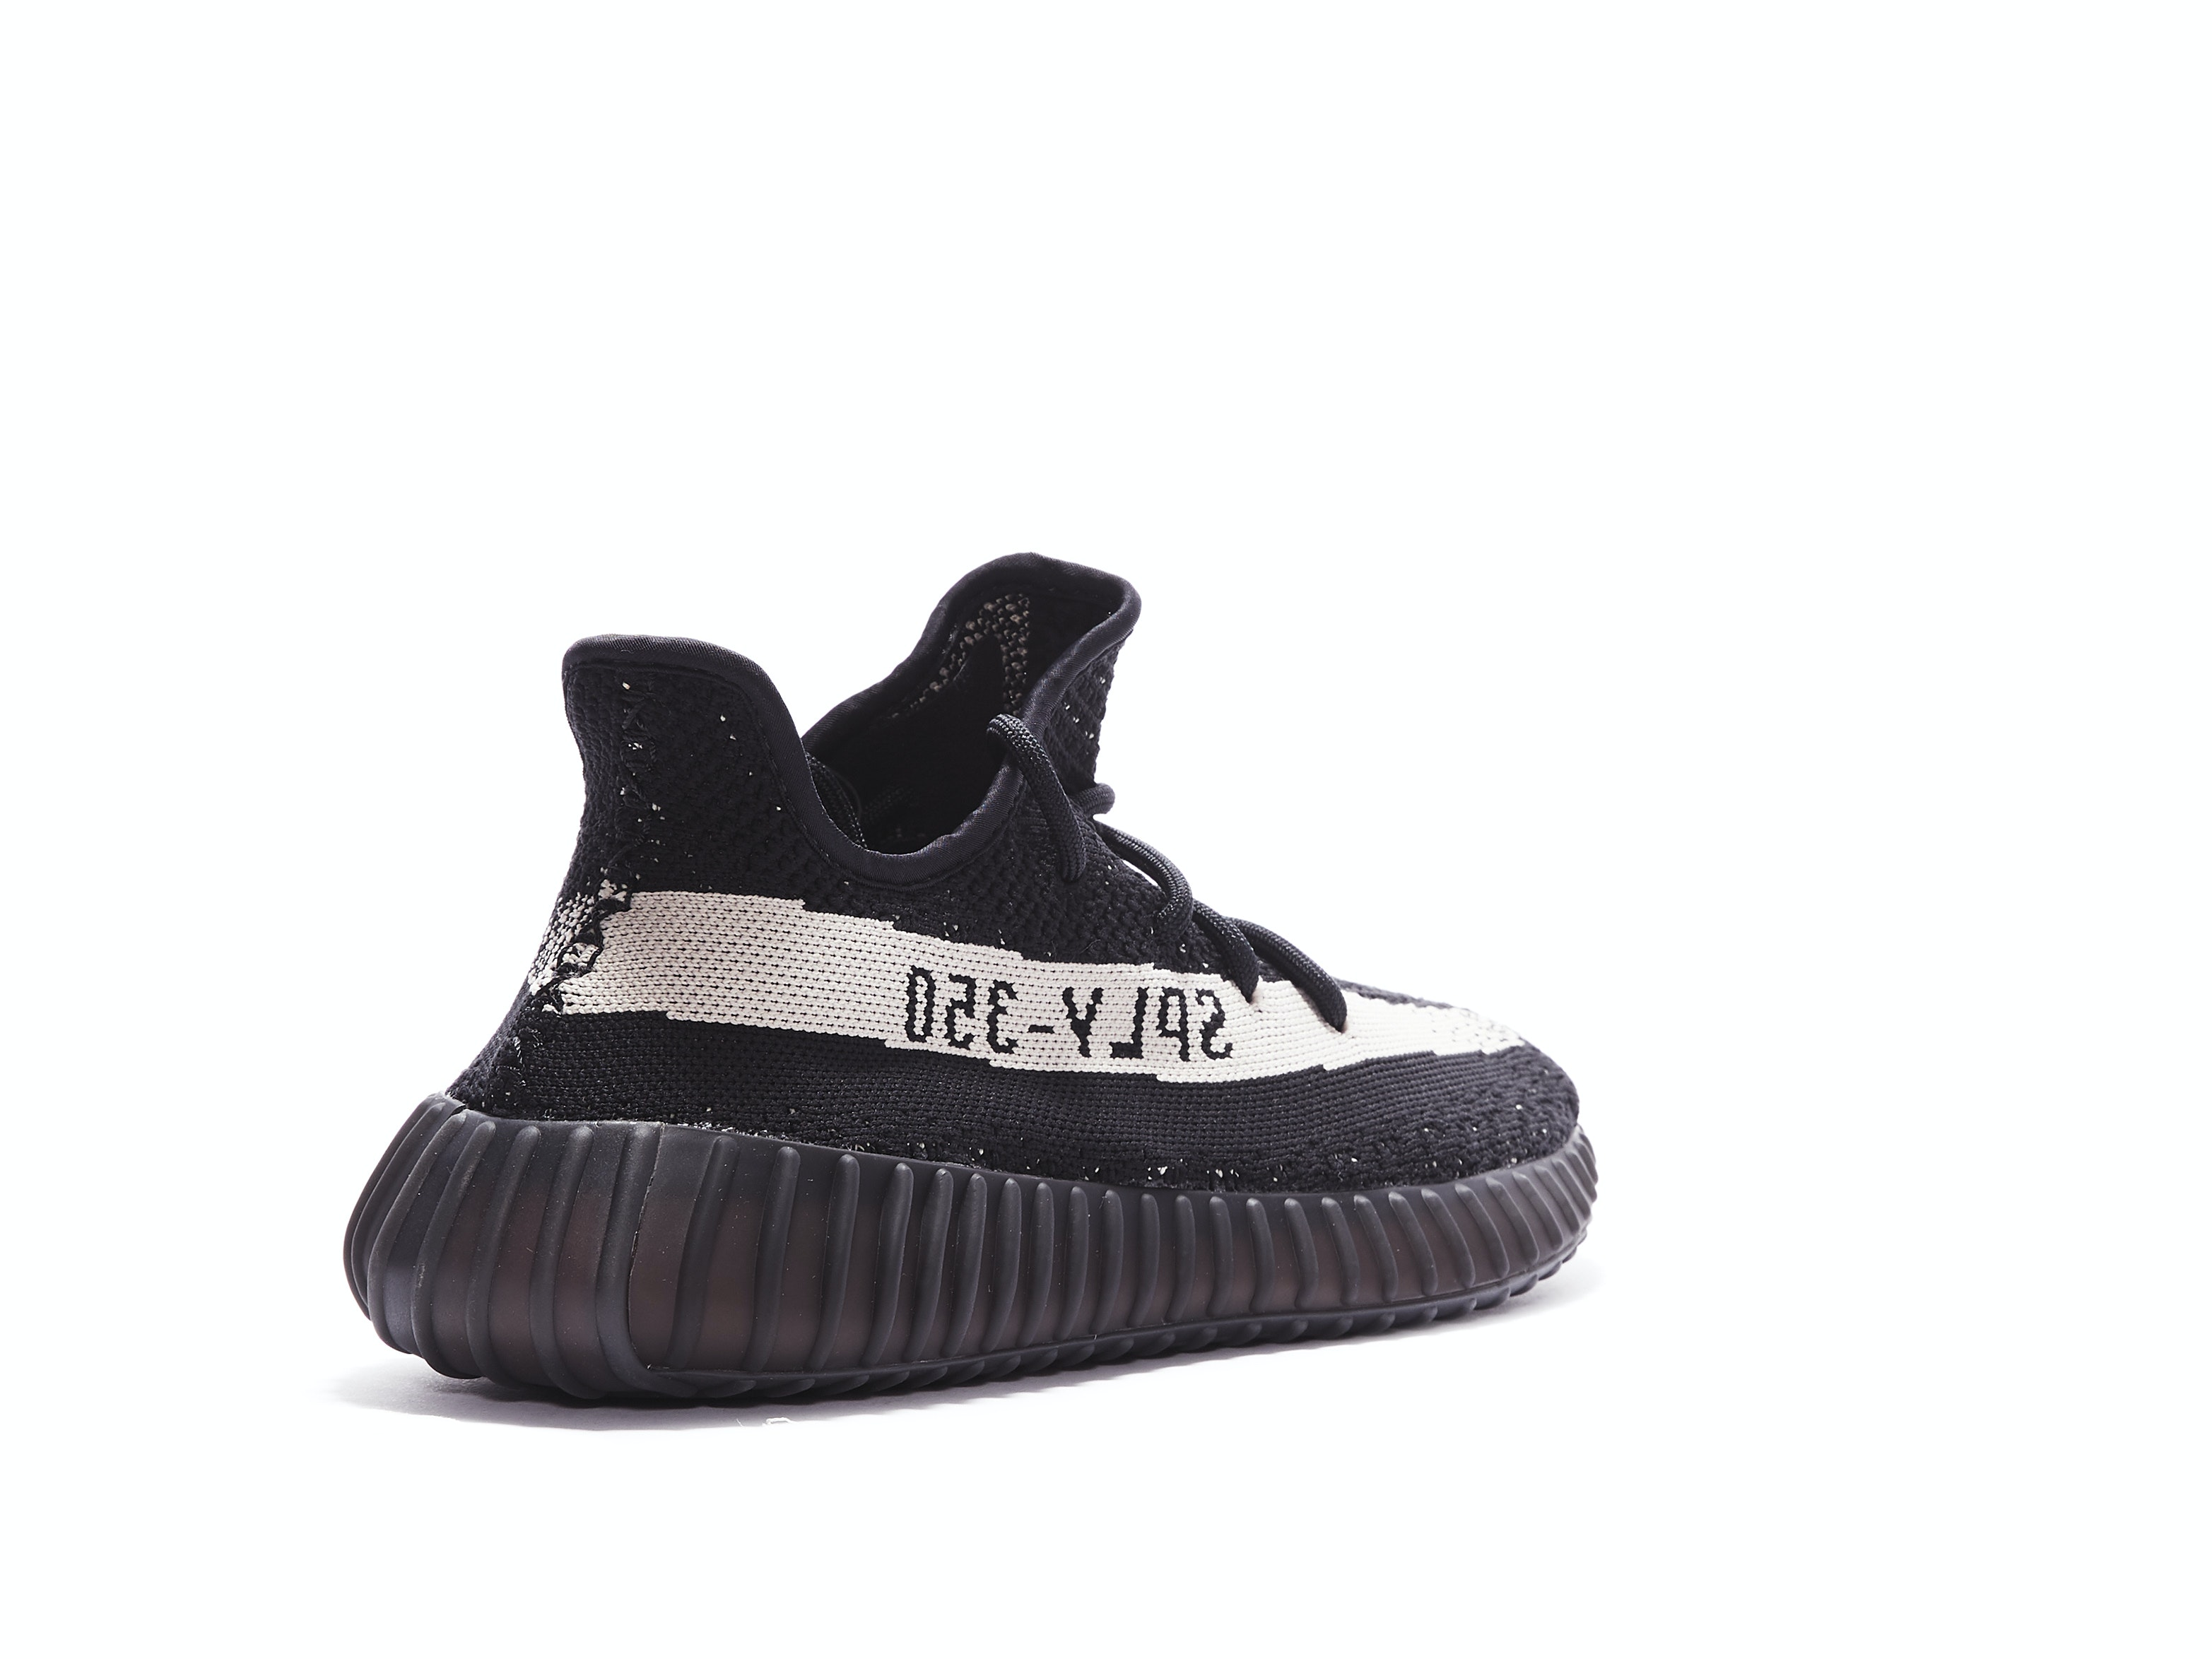 a91ff8d9 Shop Yeezy Boost 350 V2 Oreo Online | Laced